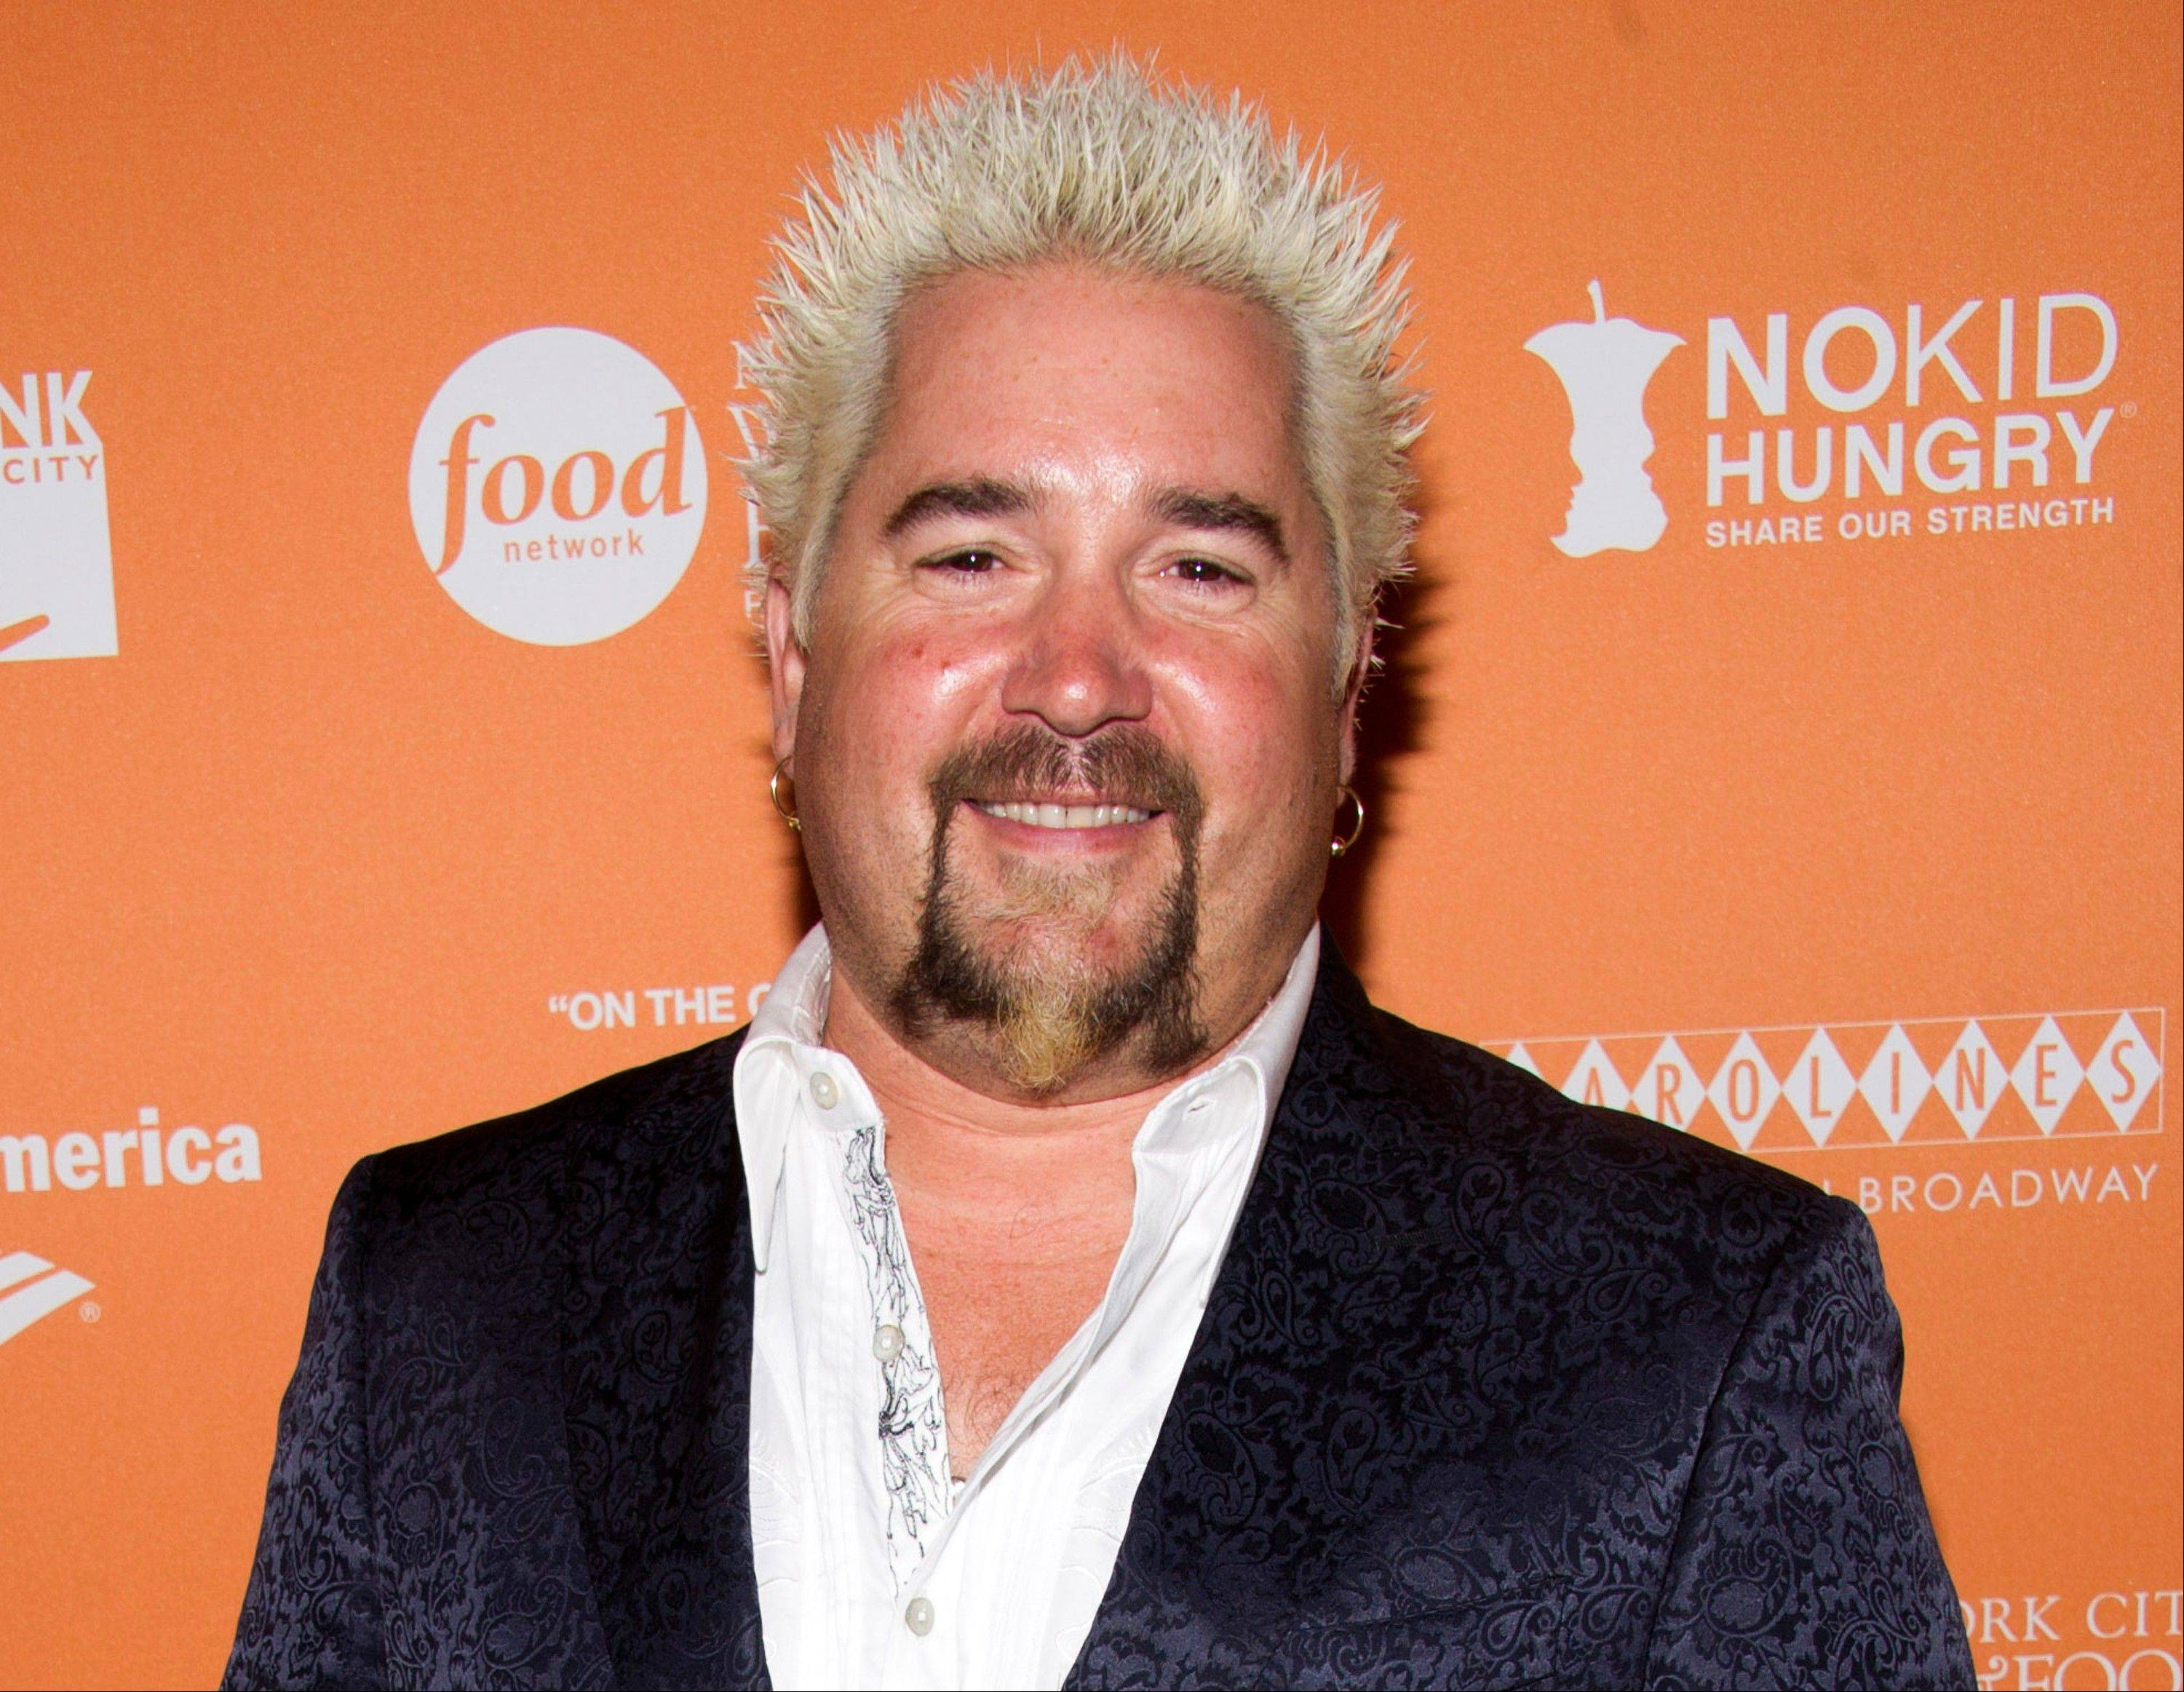 This Oct. 11, 2012 file photo shows chef Guy Fieri at the �On The Chopping Block: A Roast of Anthony Bourdain� in New York.